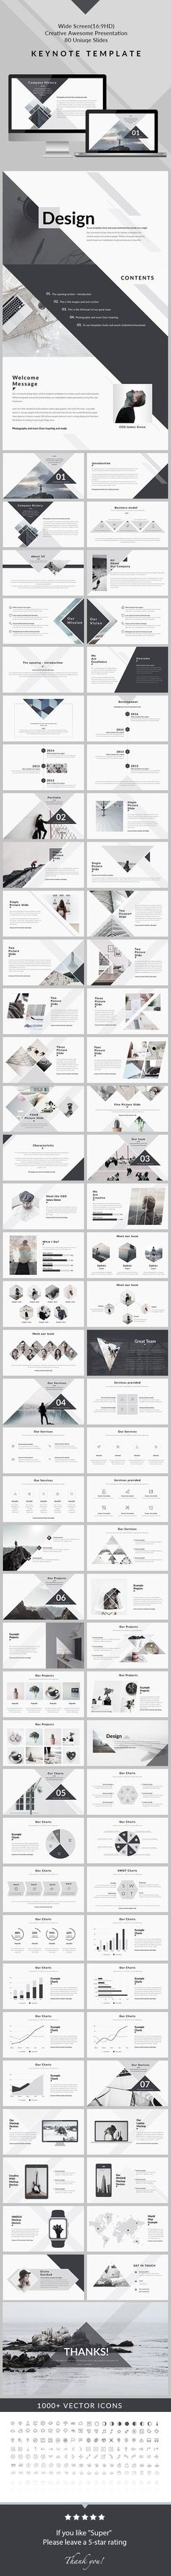 construction proposal templates%0A Business infographic   Design Clean  u     Creative Keynote Template Creative  Keynote Templates